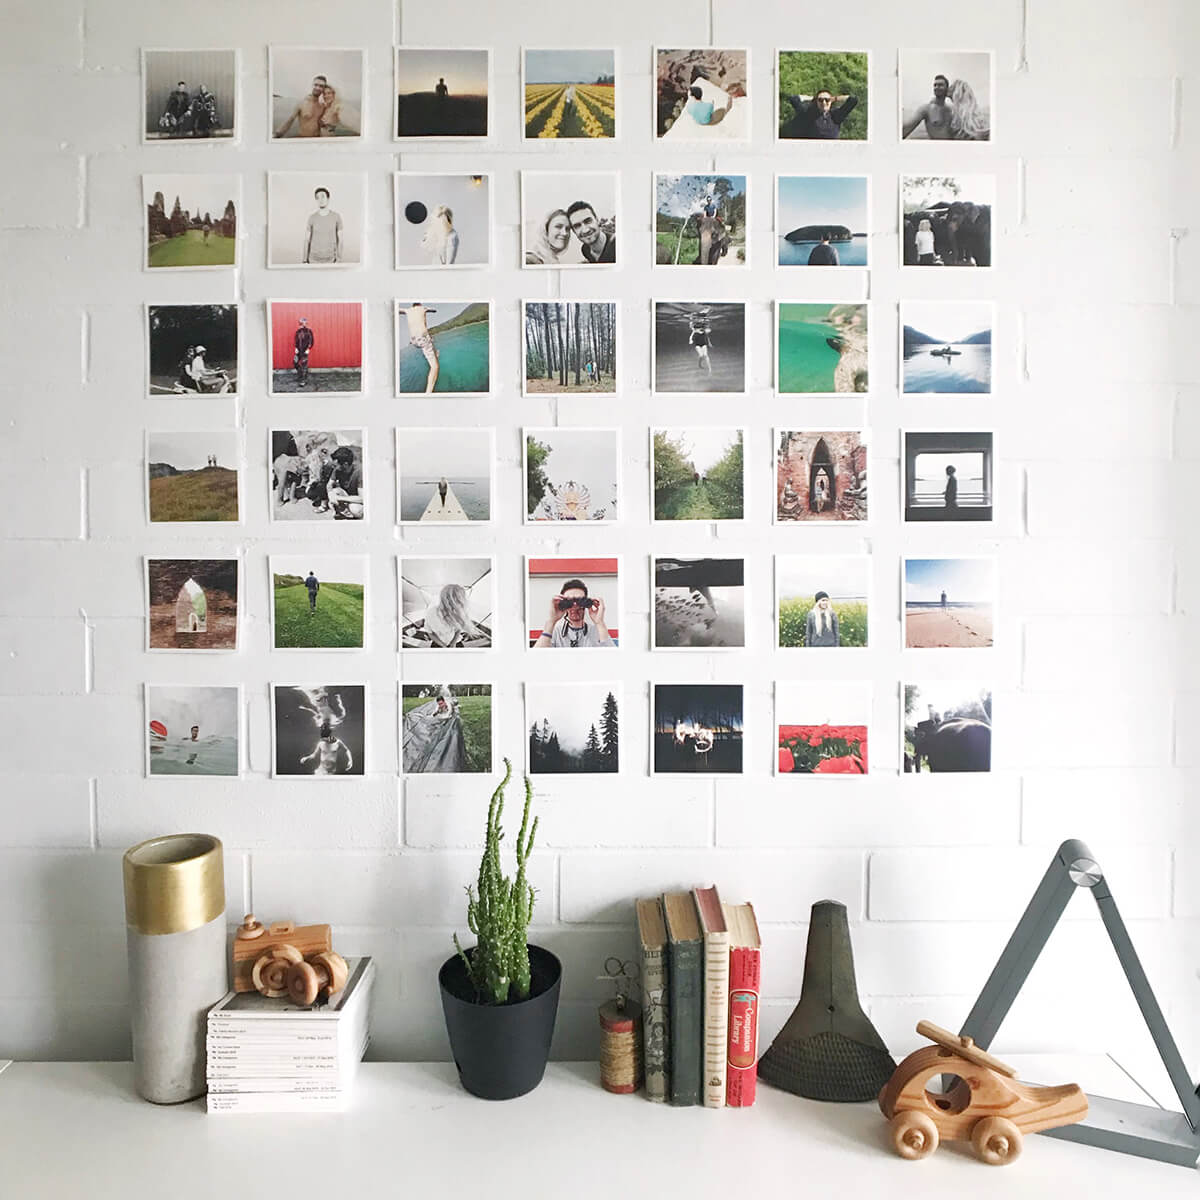 Square grid arrangement of photo prints on wall